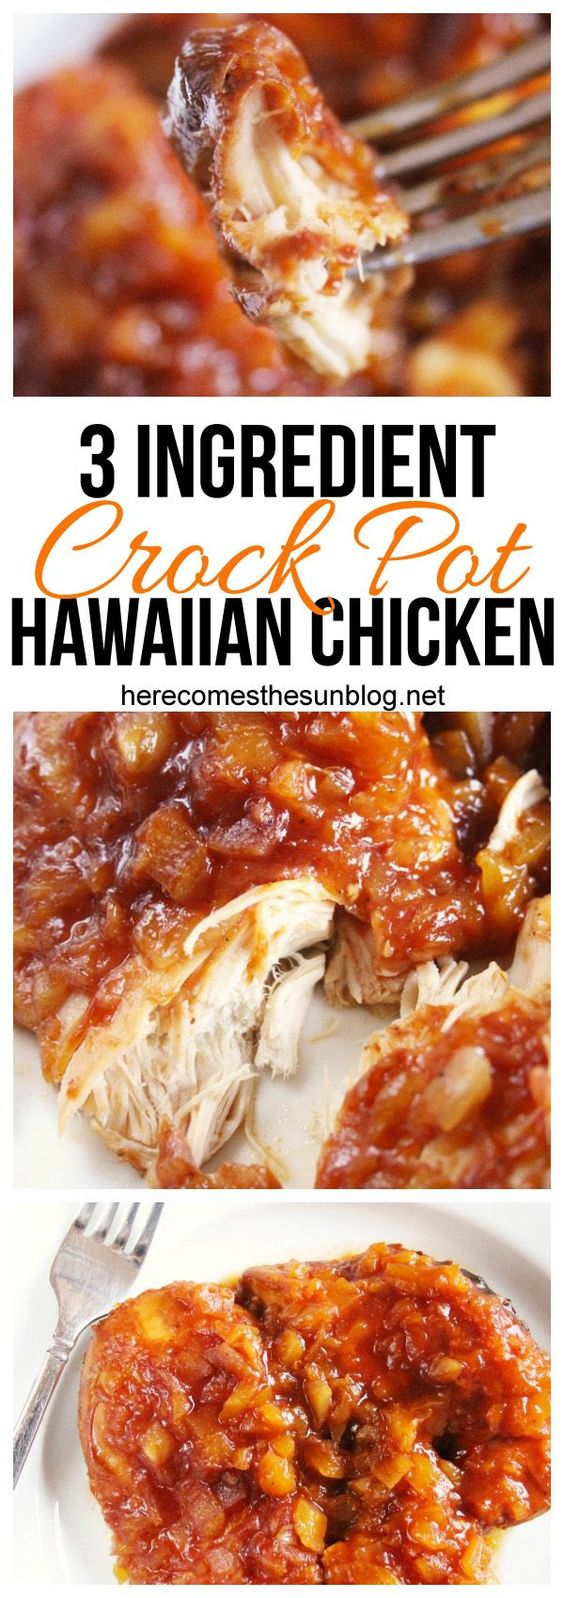 THE BEST CROCKPOT HAWAIIAN CHICKEN RECIPE #thebest #crockpot #hawaiian #chicken #chickenrecipes #delicious #deliciousrecipes #tasty #tastyrecipes Desserts, Healthy Food, Easy Recipes, Dinner, Lauch, Delicious, Easy, Holidays Recipe, Special Diet, World Cuisine, Cake, Grill, Appetizers, Healthy Recipes, Drinks, Cooking Method, Italian Recipes, Meat, Vegan Recipes, Cookies, Pasta Recipes, Fruit, Salad, Soup Appetizers, Non Alcoholic Drinks, Meal Planning, Vegetables, Soup, Pastry, Chocolate, Dairy, Alcoholic Drinks, Bulgur Salad, Baking, Snacks, Beef Recipes, Meat Appetizers, Mexican Recipes, Bread, Asian Recipes, Seafood Appetizers, Muffins, Breakfast And Brunch, Condiments, Cupcakes, Cheese, Chicken Recipes, Pie, Coffee, No Bake Desserts, Healthy Snacks, Seafood, Grain, Lunches Dinners, Mexican, Quick Bread, Liquor